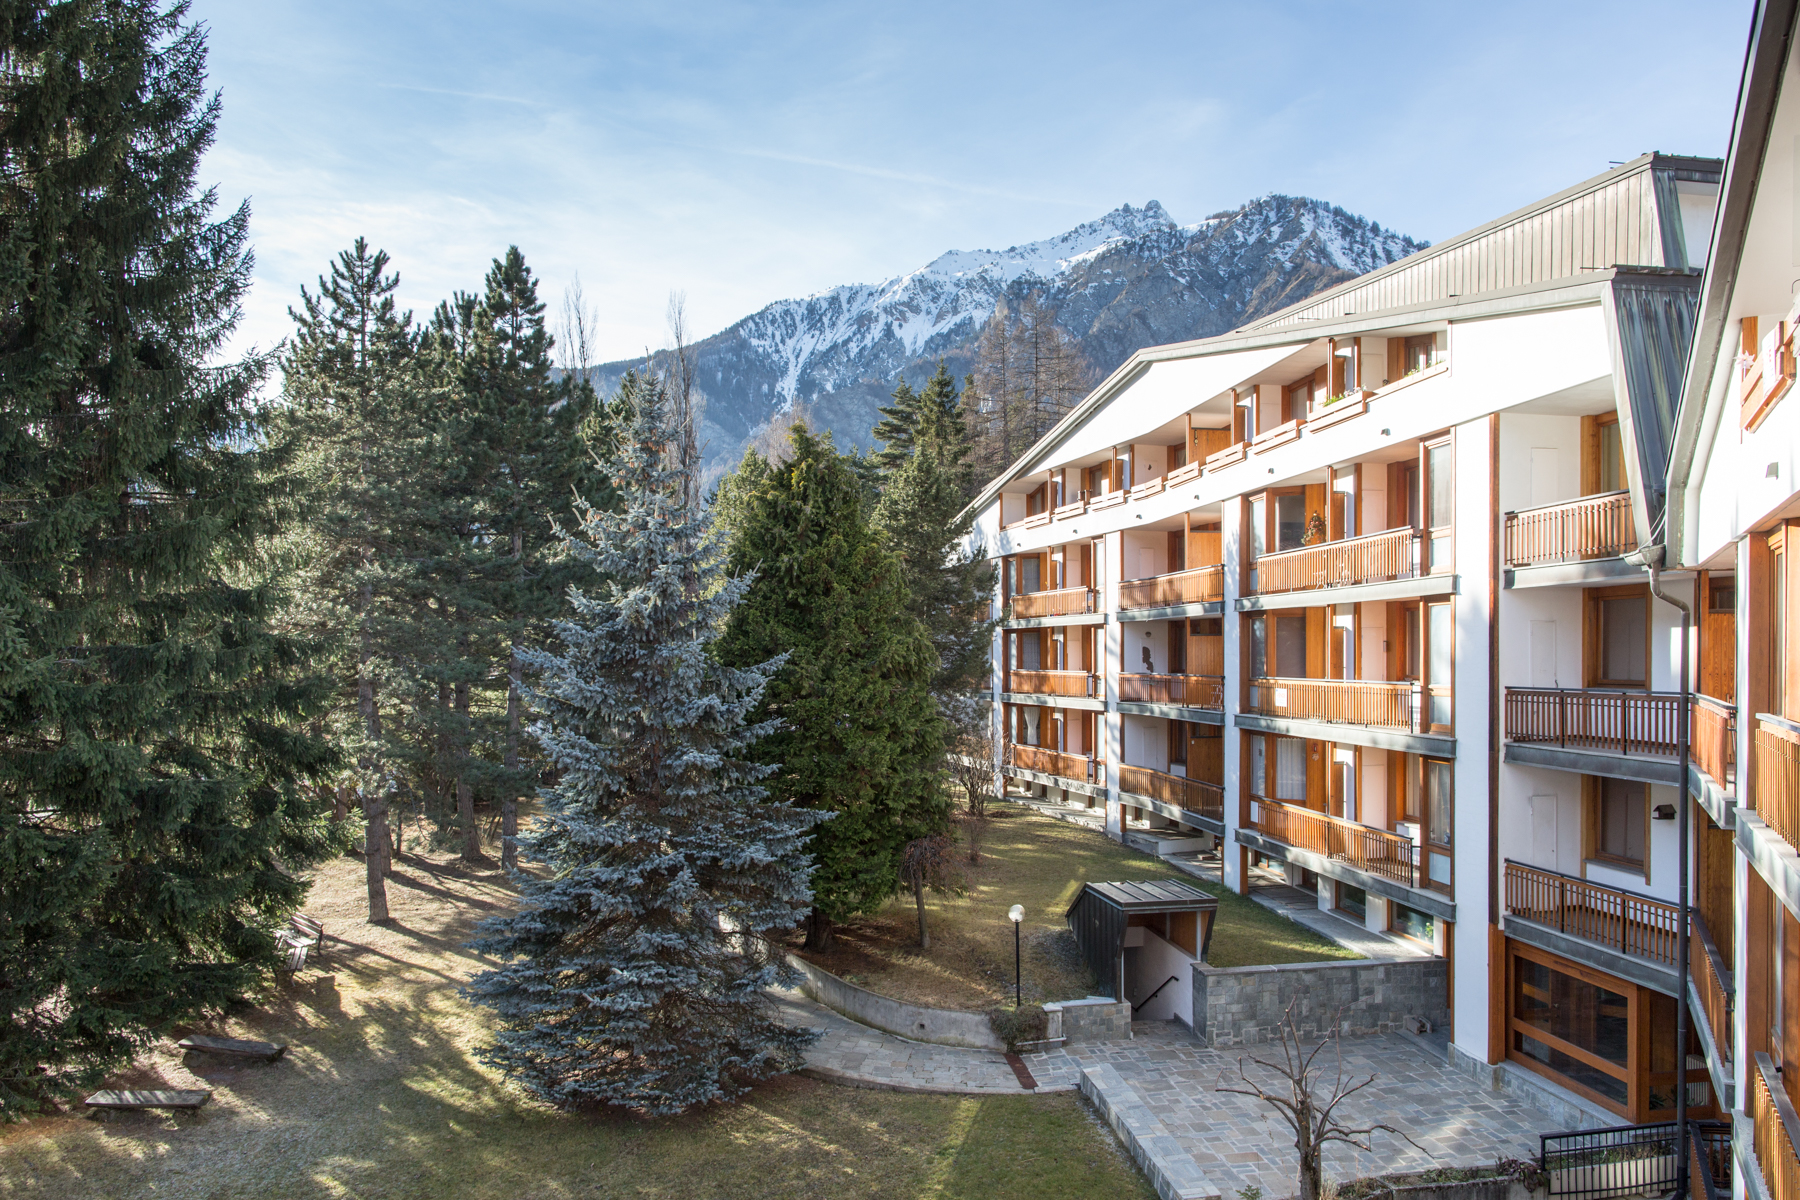 Additional photo for property listing at Cozy apartment in Bardonecchia Viale della Vittoria Bardonecchia, Turin 10052 Italien